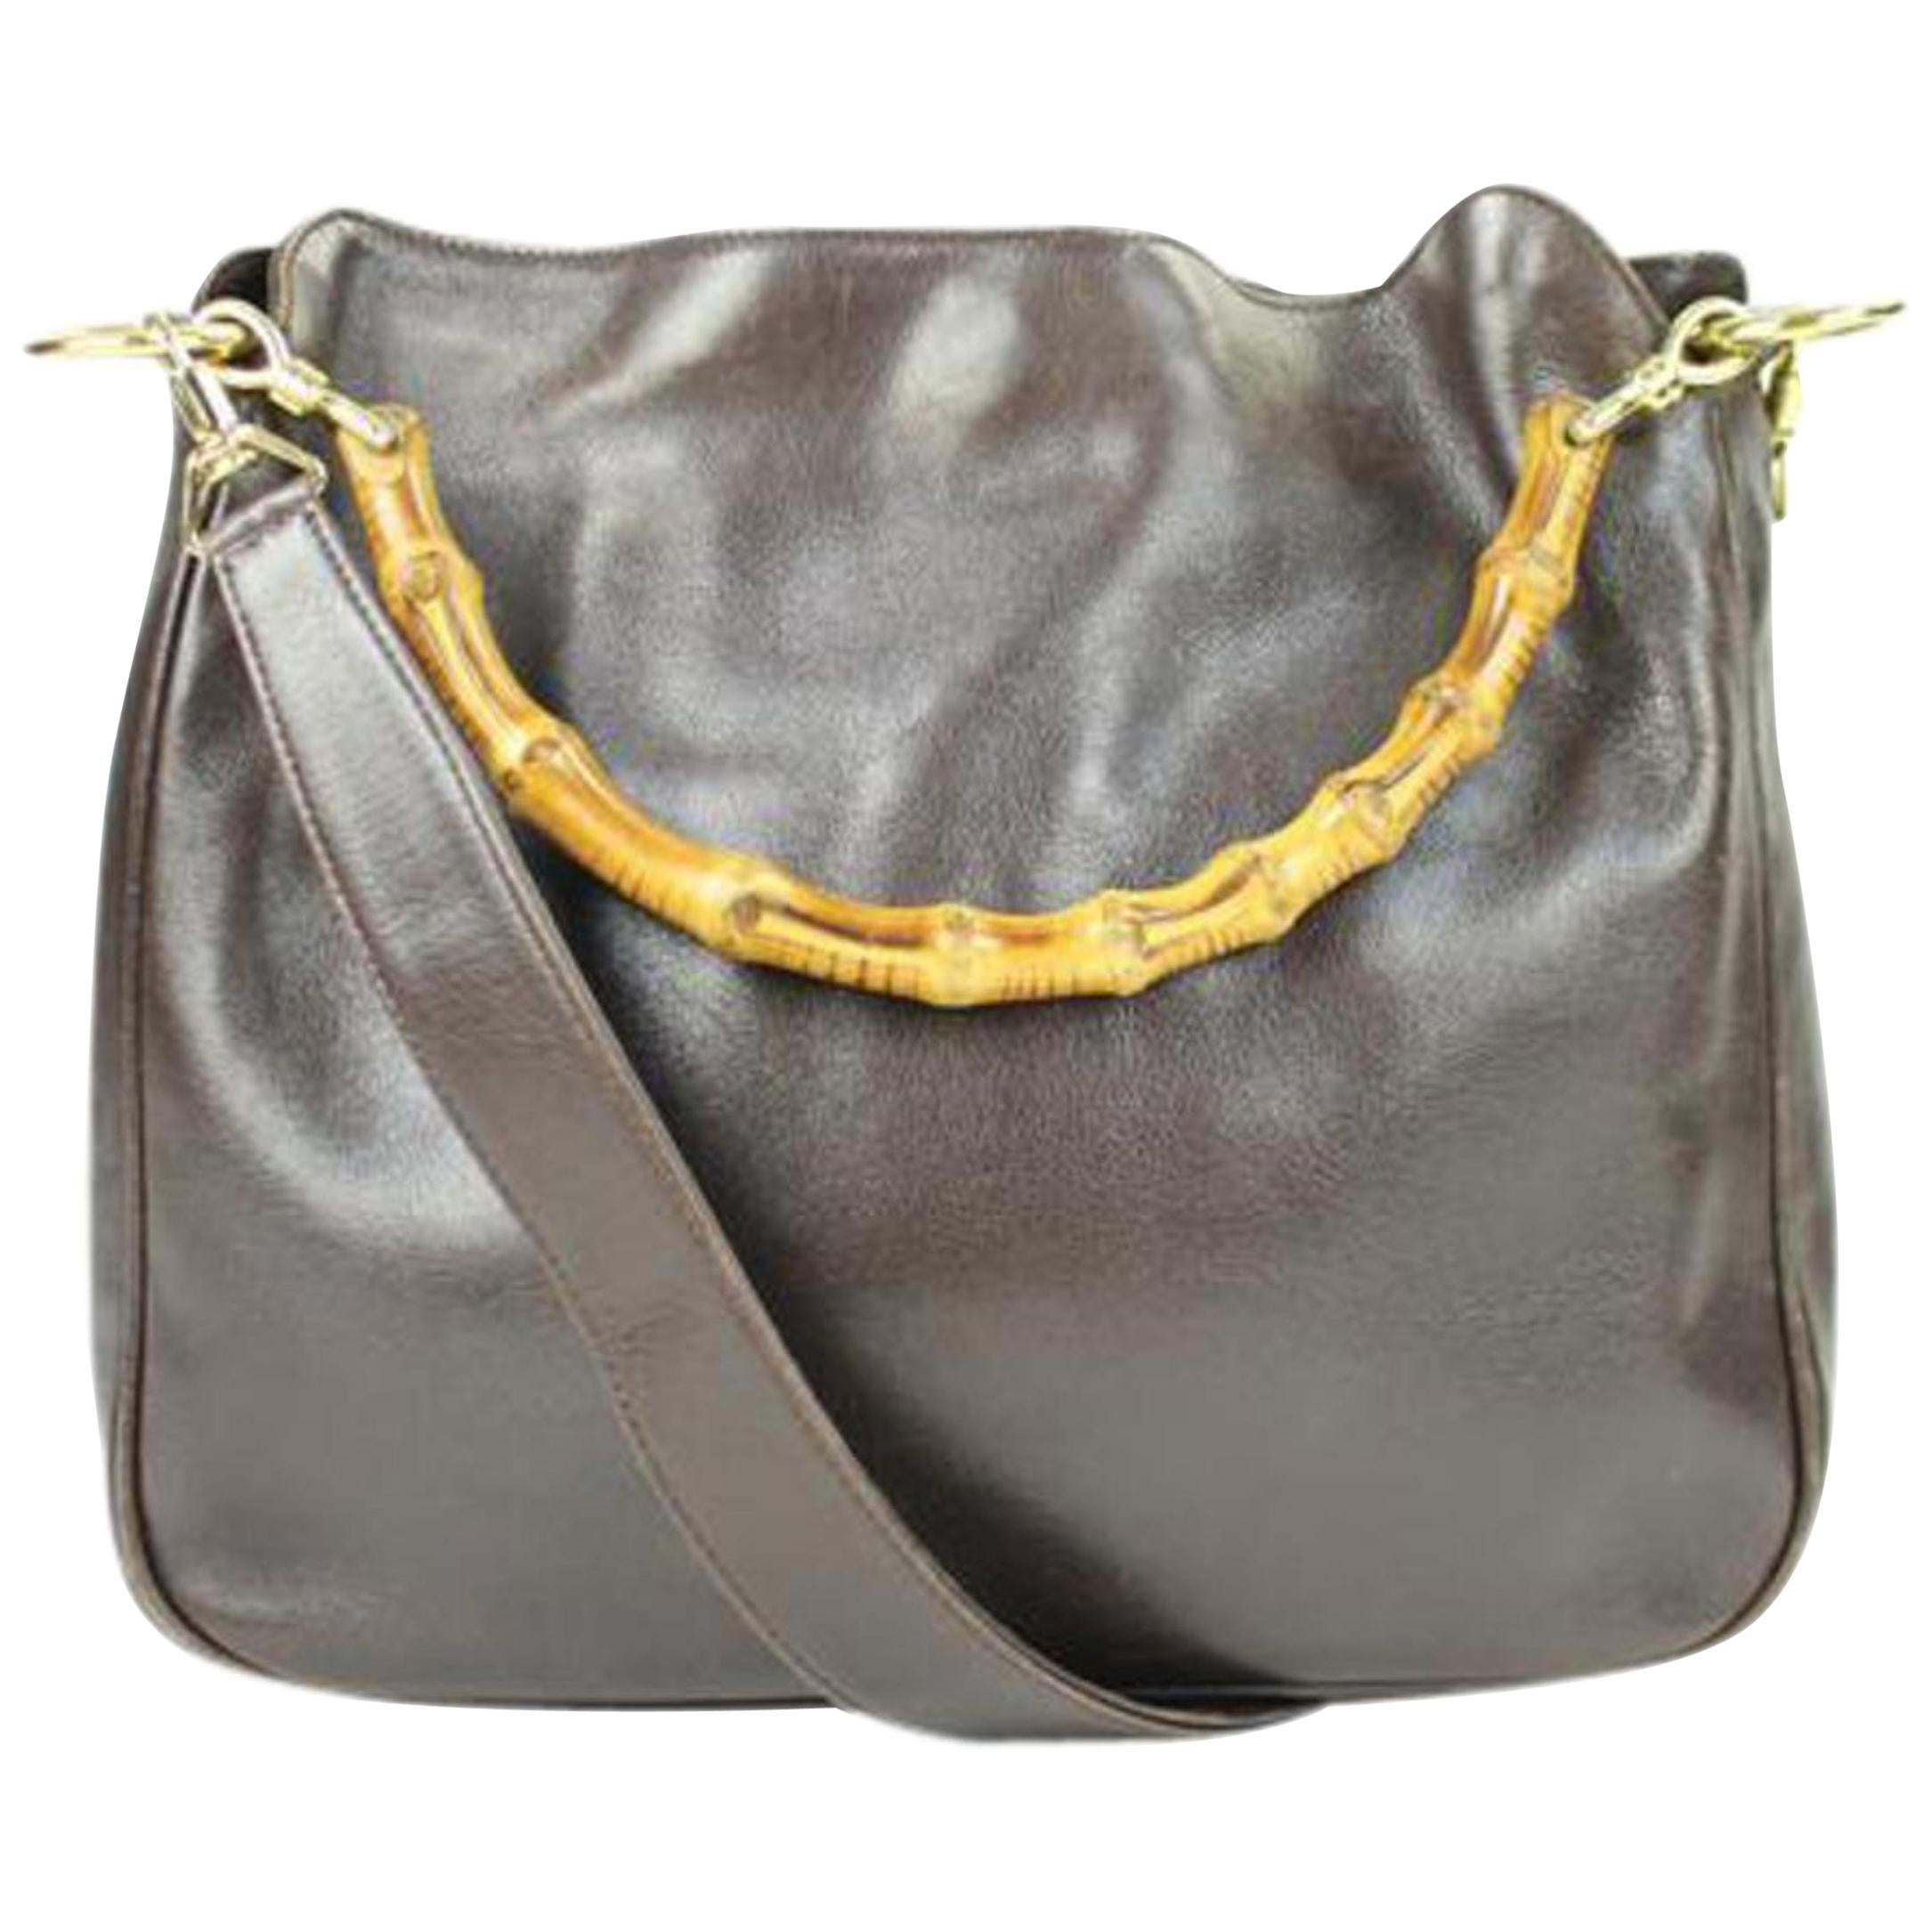 e1a505a46b41 Vintage Gucci Shoulder Bags - 944 For Sale at 1stdibs